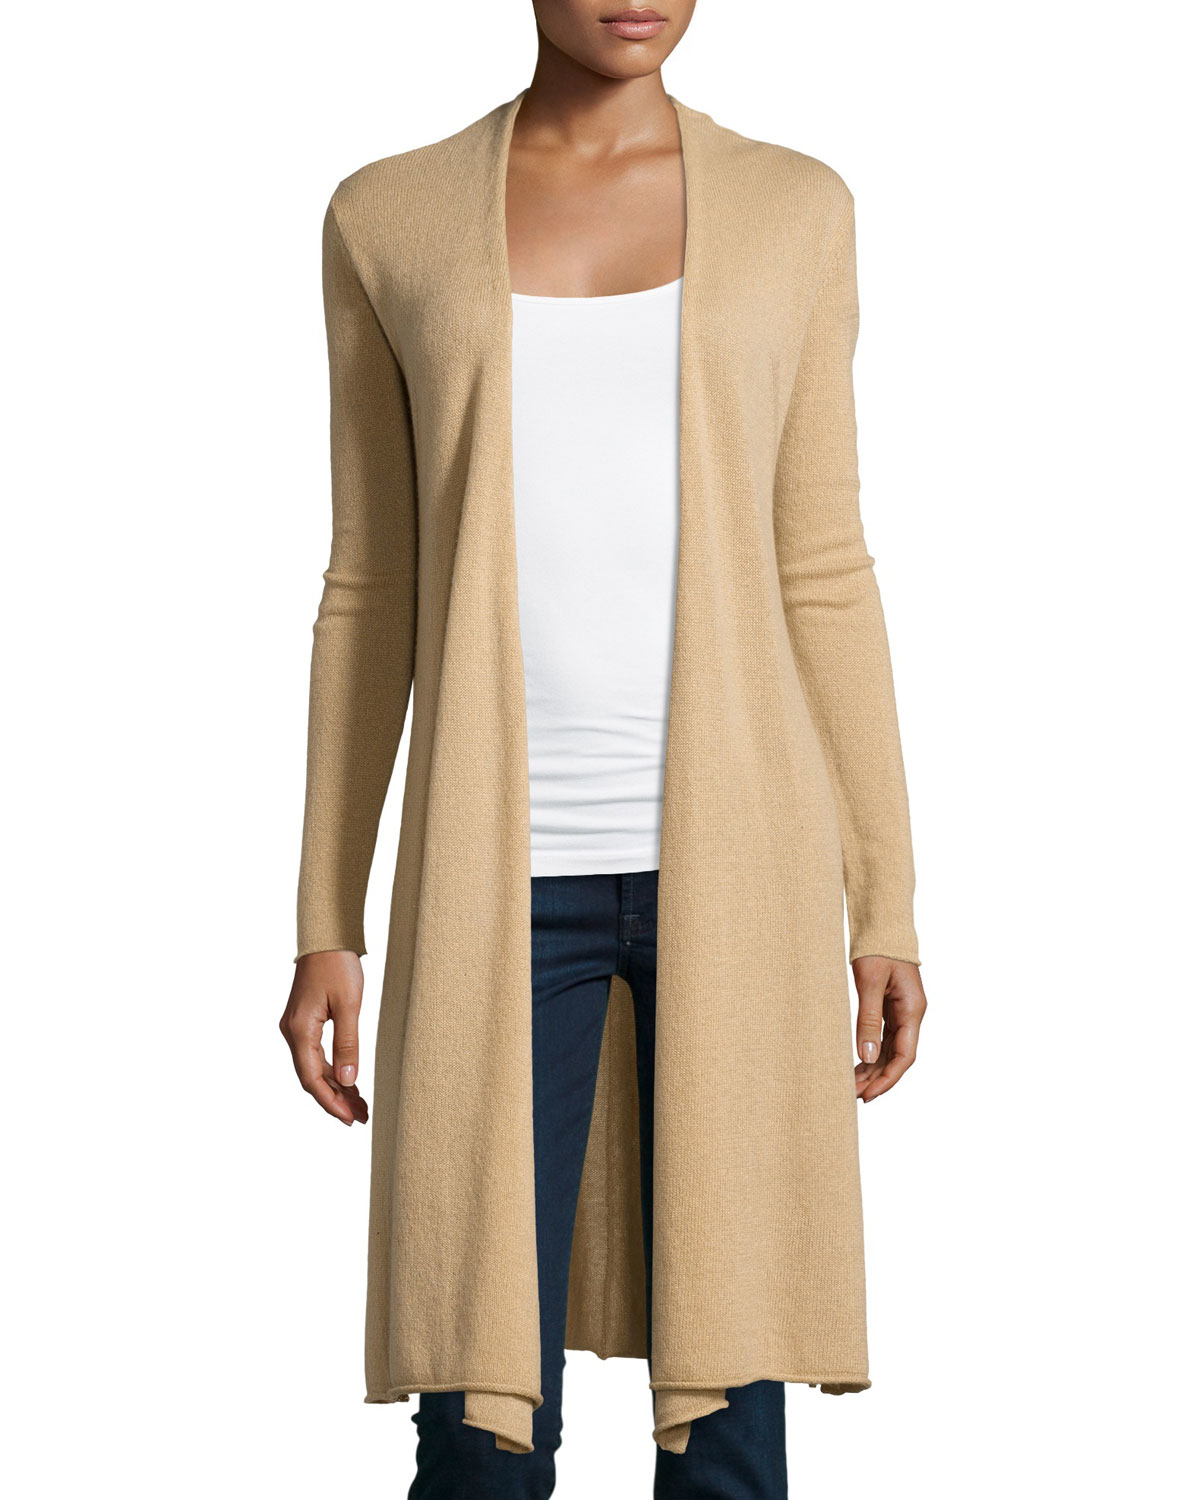 Neiman marcus Cashmere Duster Cardigan in Natural | Lyst